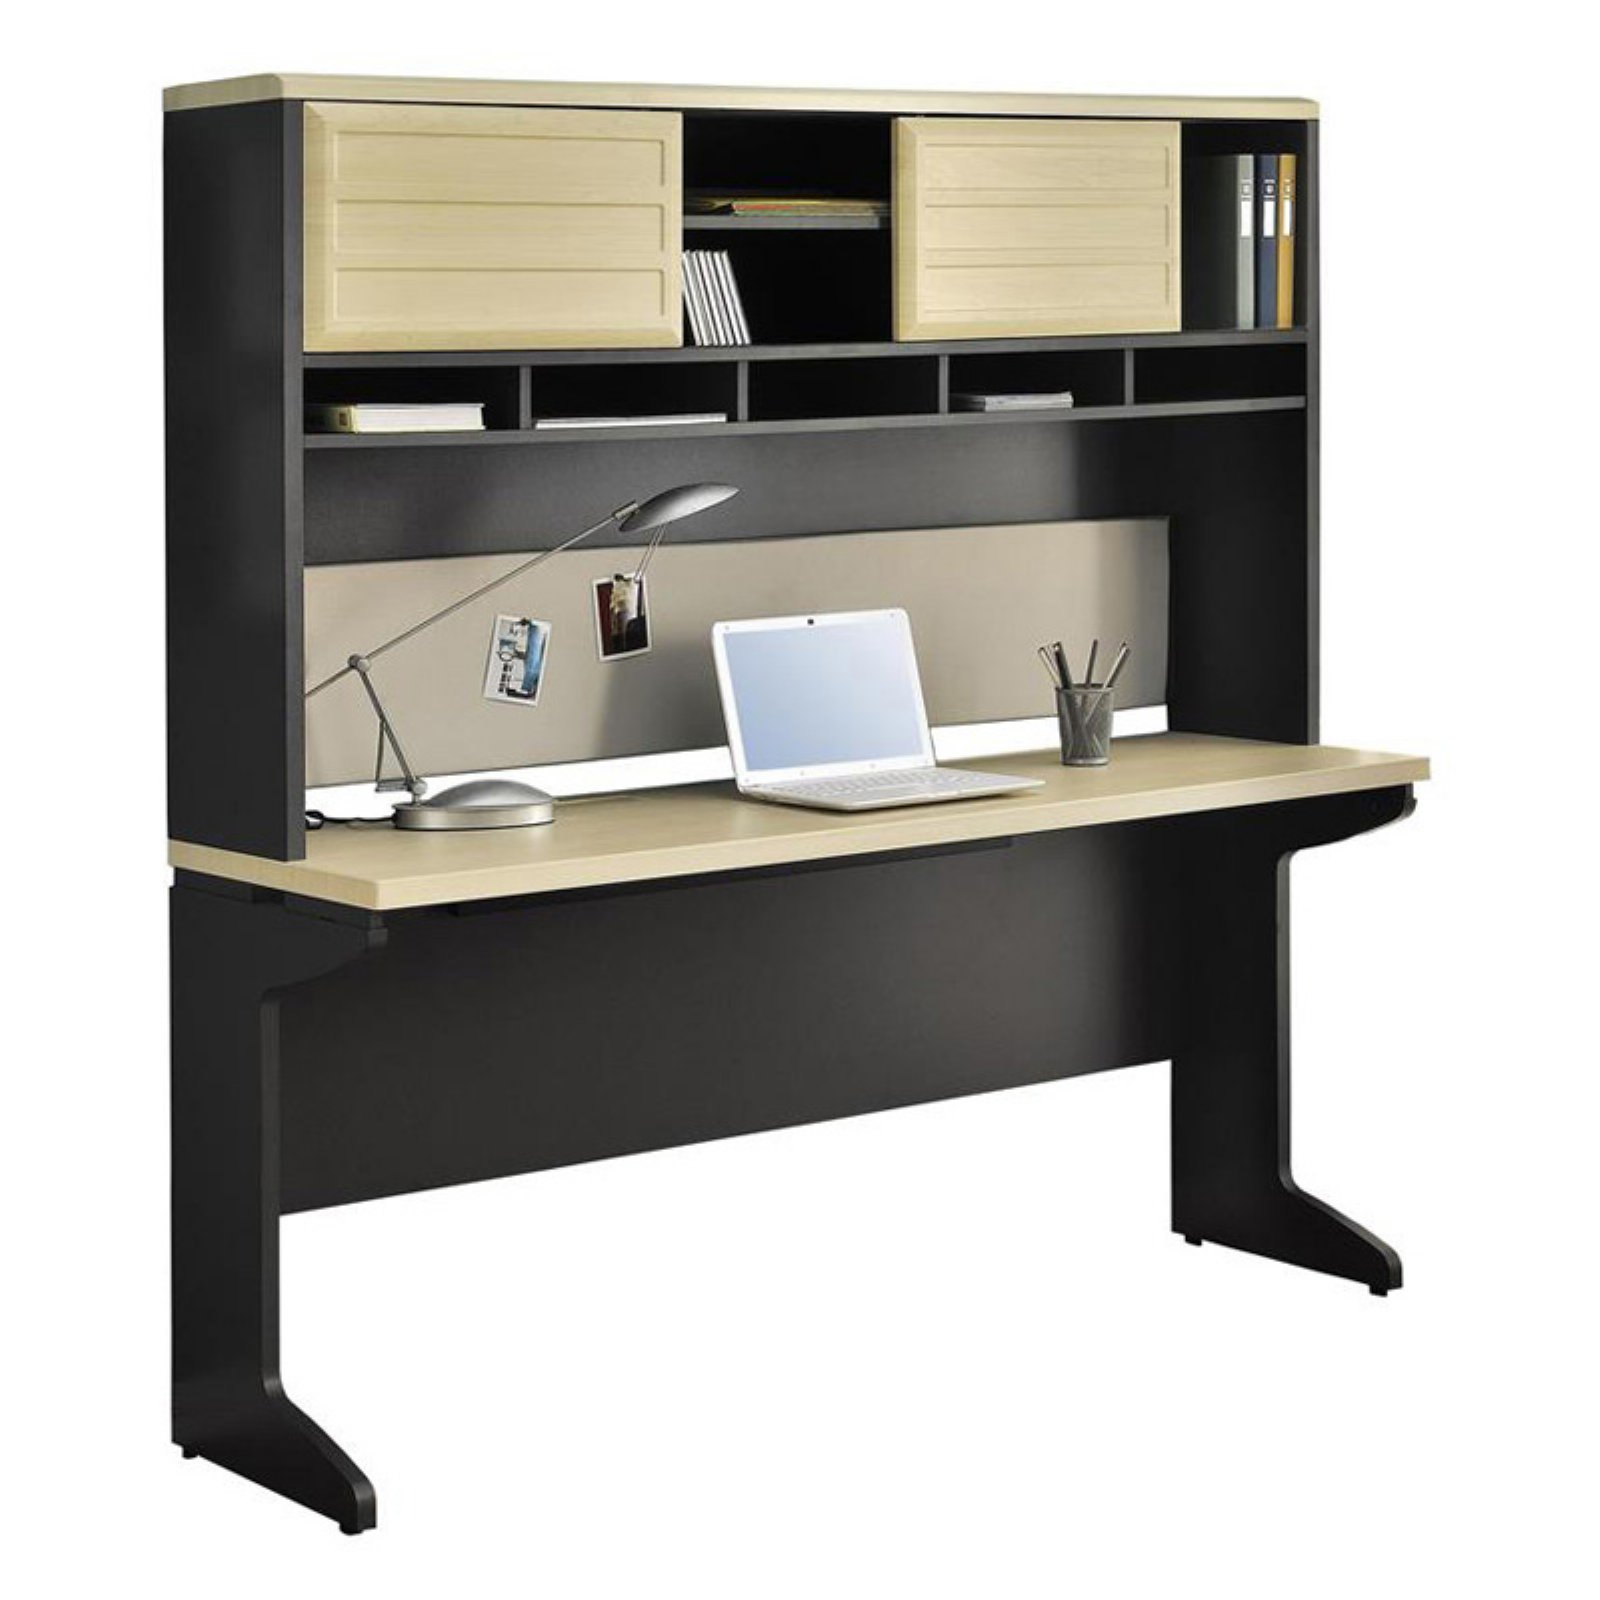 Altra Furniture Pursuit Benjamin Computer Desk with Hutch Bundle